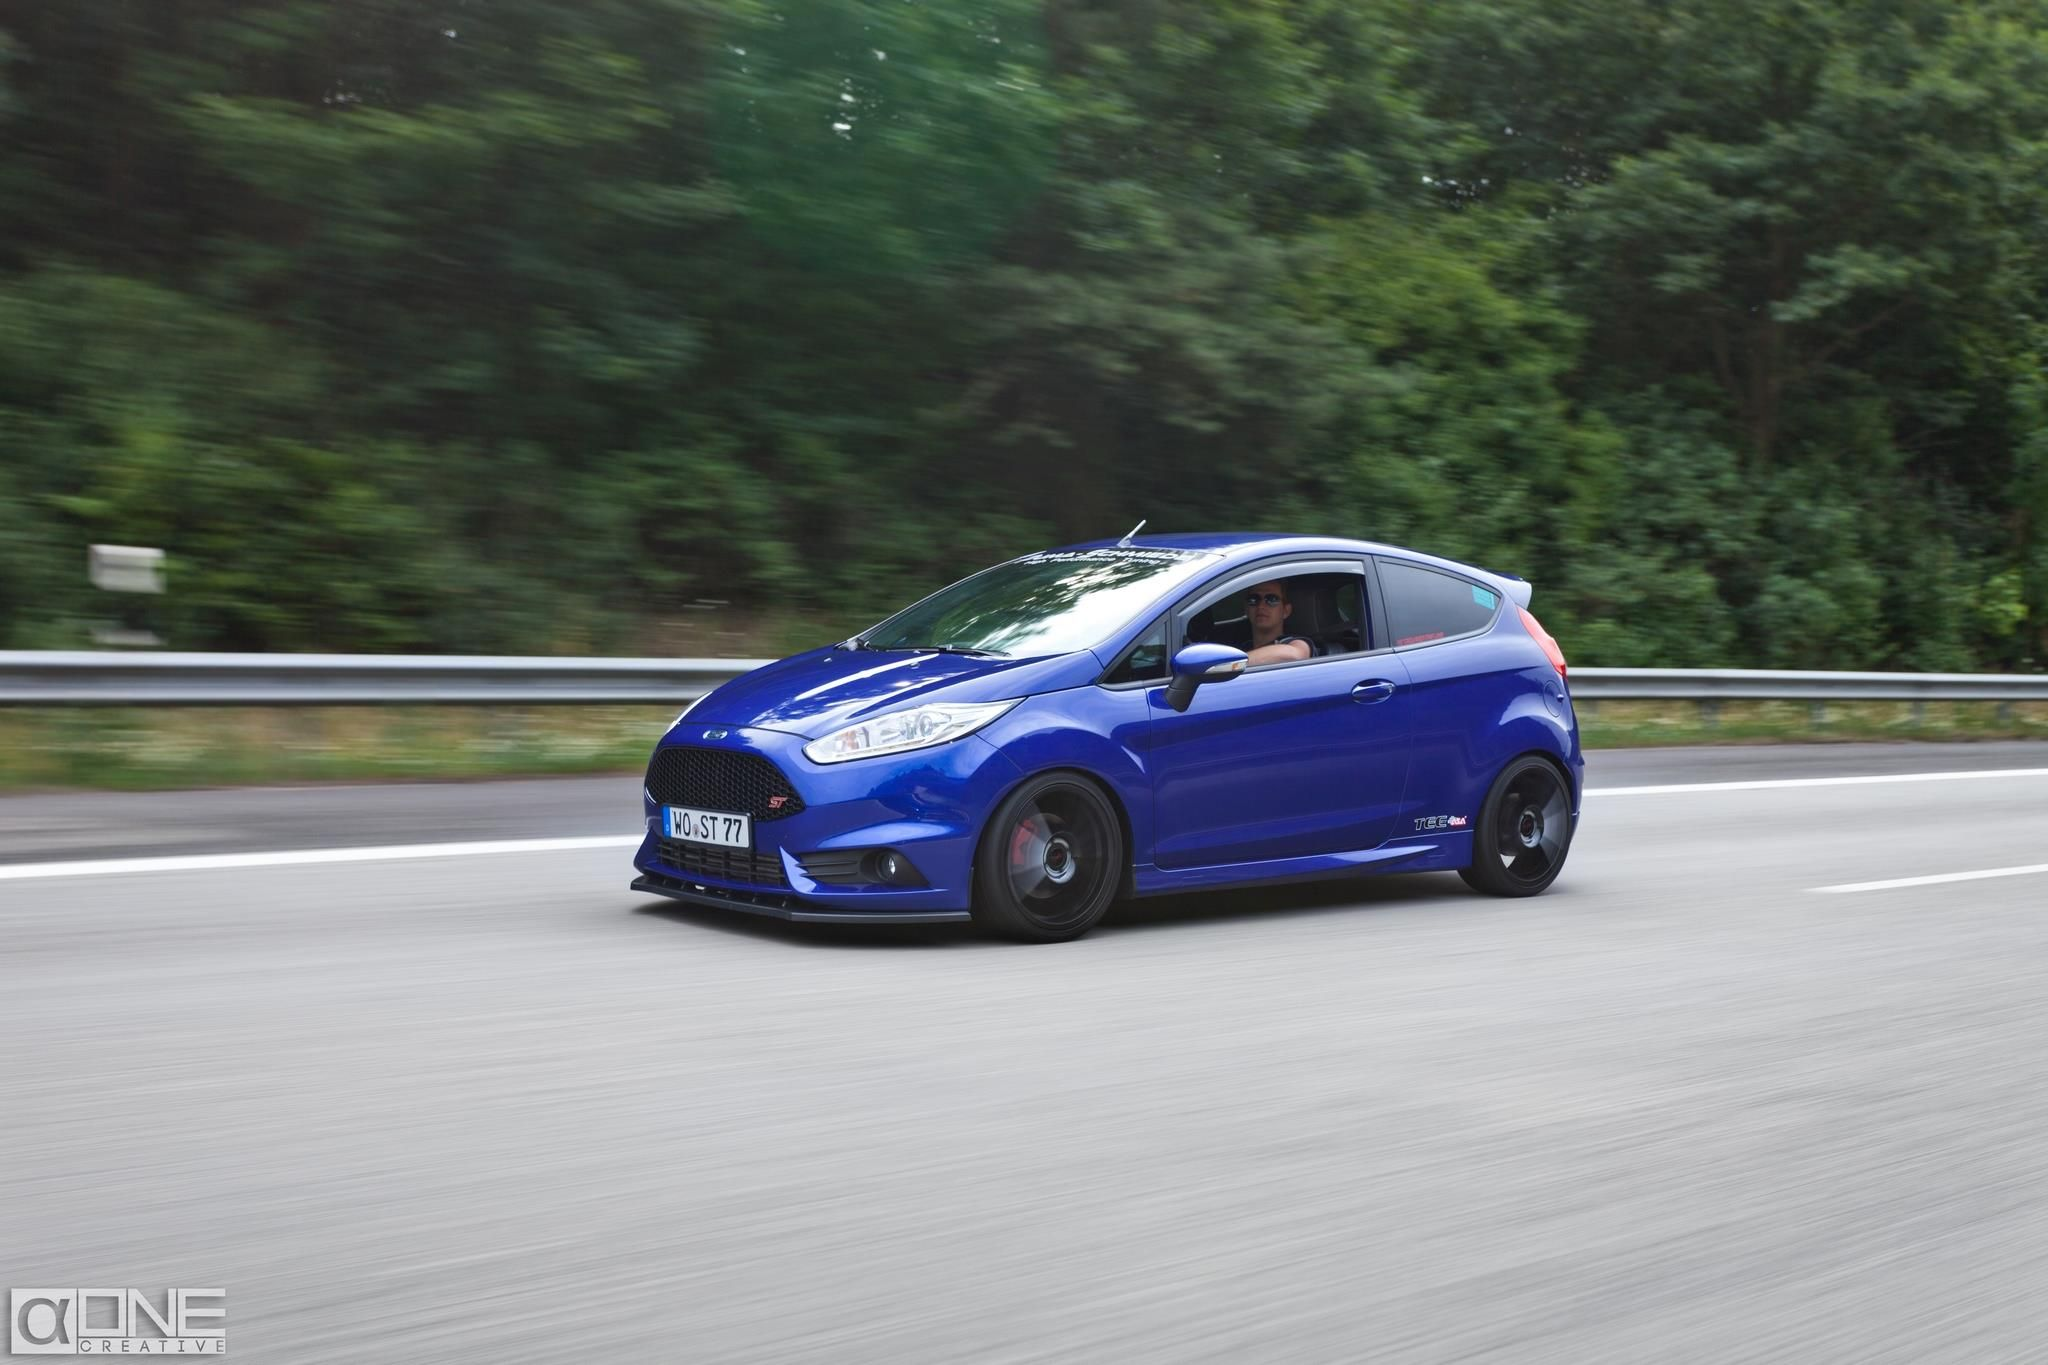 ford fiesta mk7 st blue tuning all ford models pinterest fiestas ford and cars. Black Bedroom Furniture Sets. Home Design Ideas